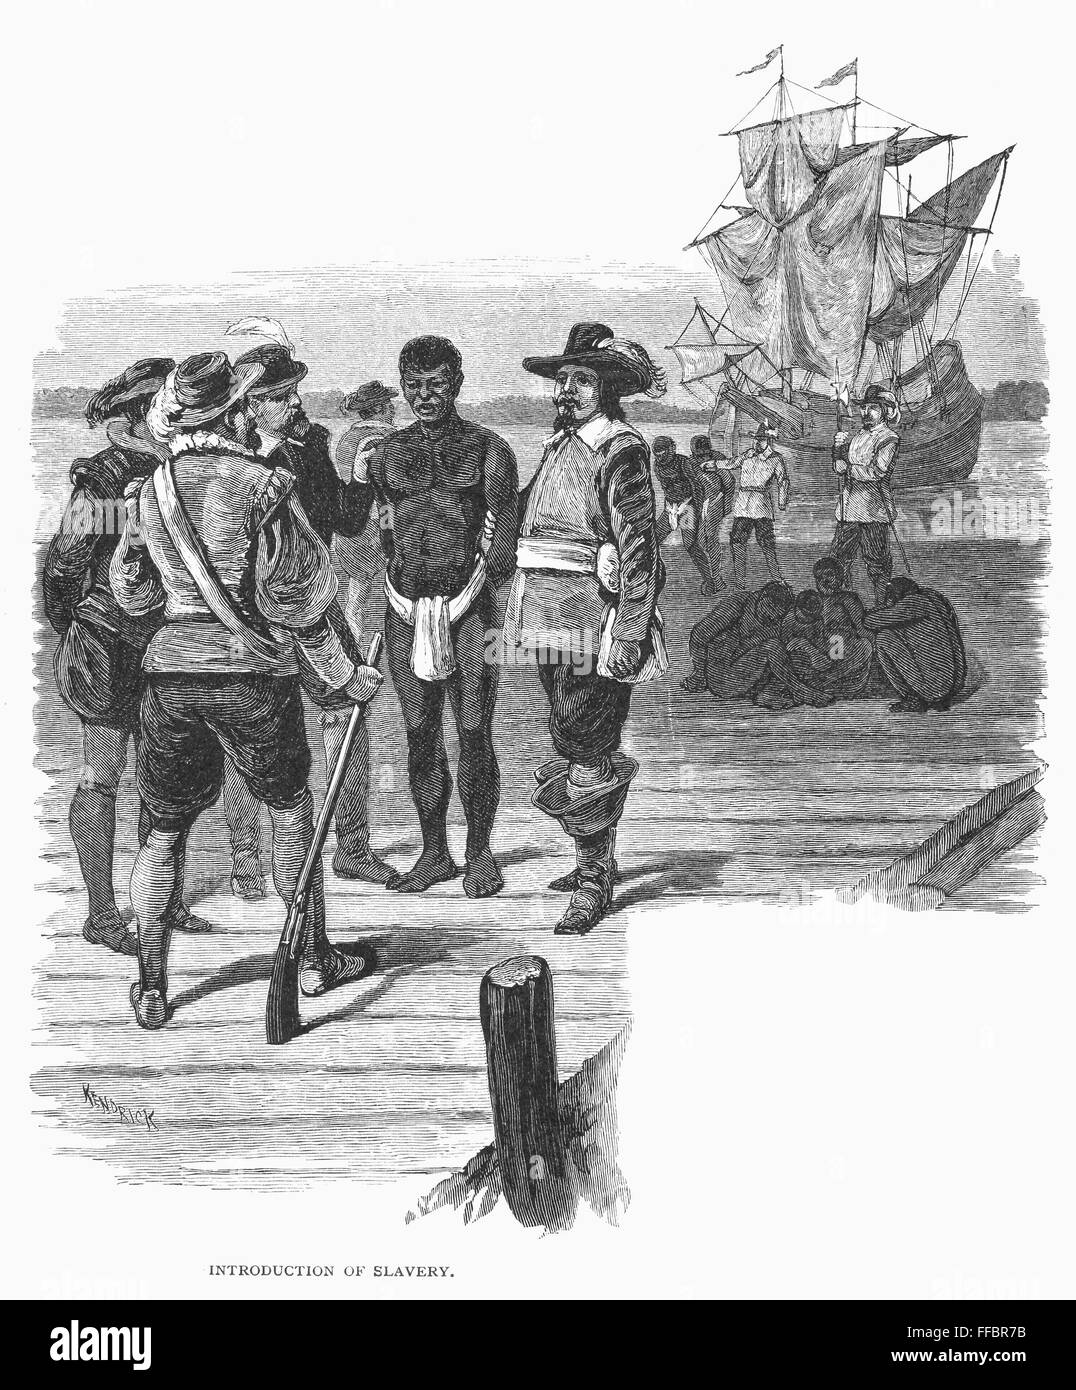 JAMESTOWN: SLAVERY, 1619. /nThe introduction of African slavery into the  American colonies at Jamestown, Virginia, in August 1619 when a Dutch ship  landed ...